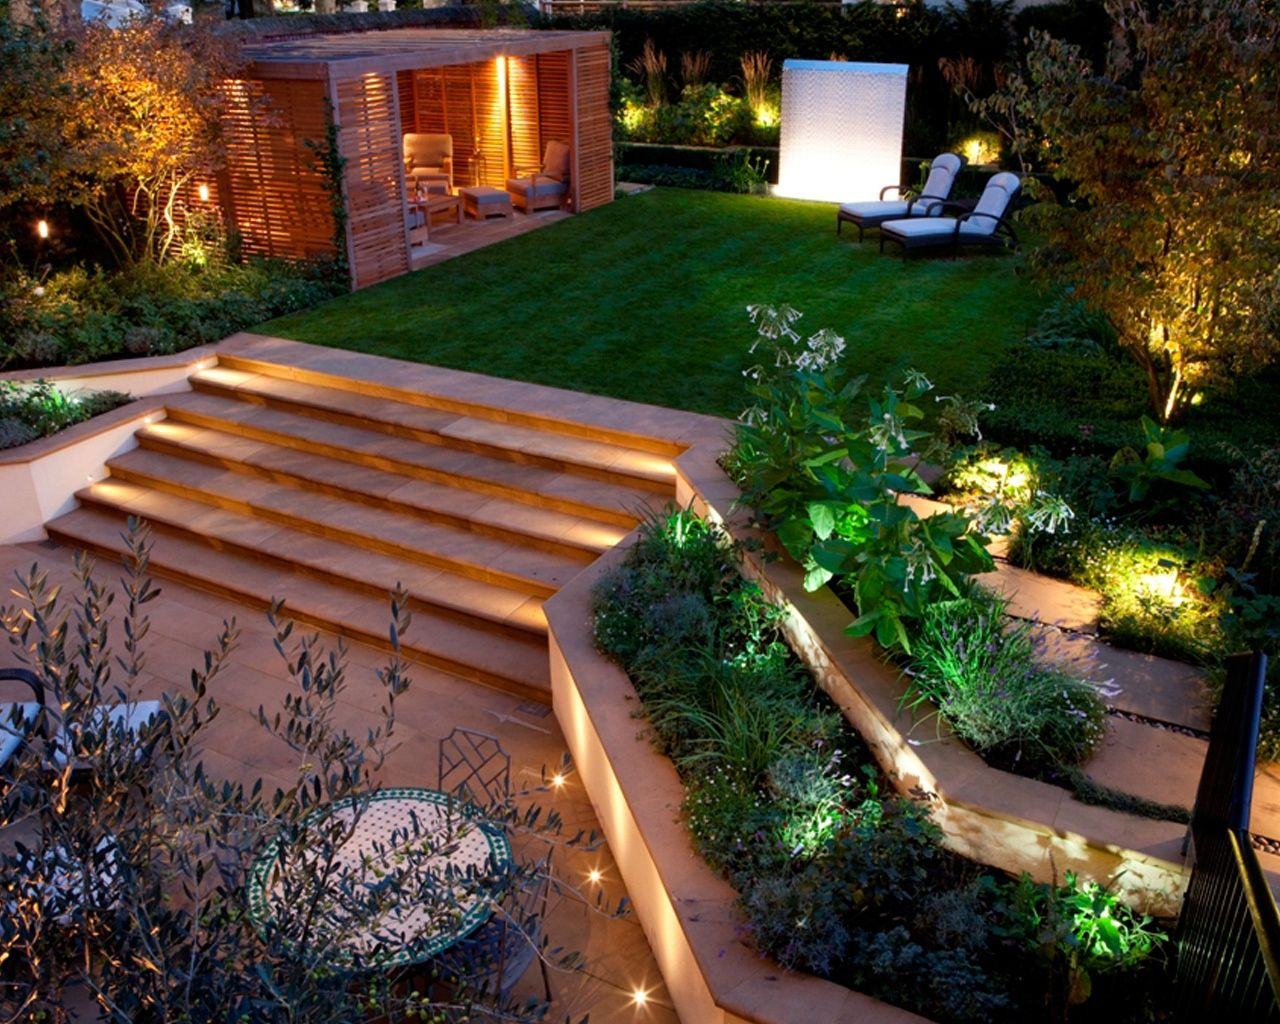 Modern garden design with pool - Contemporary Garden Design Residential Garden Design Portfolio From